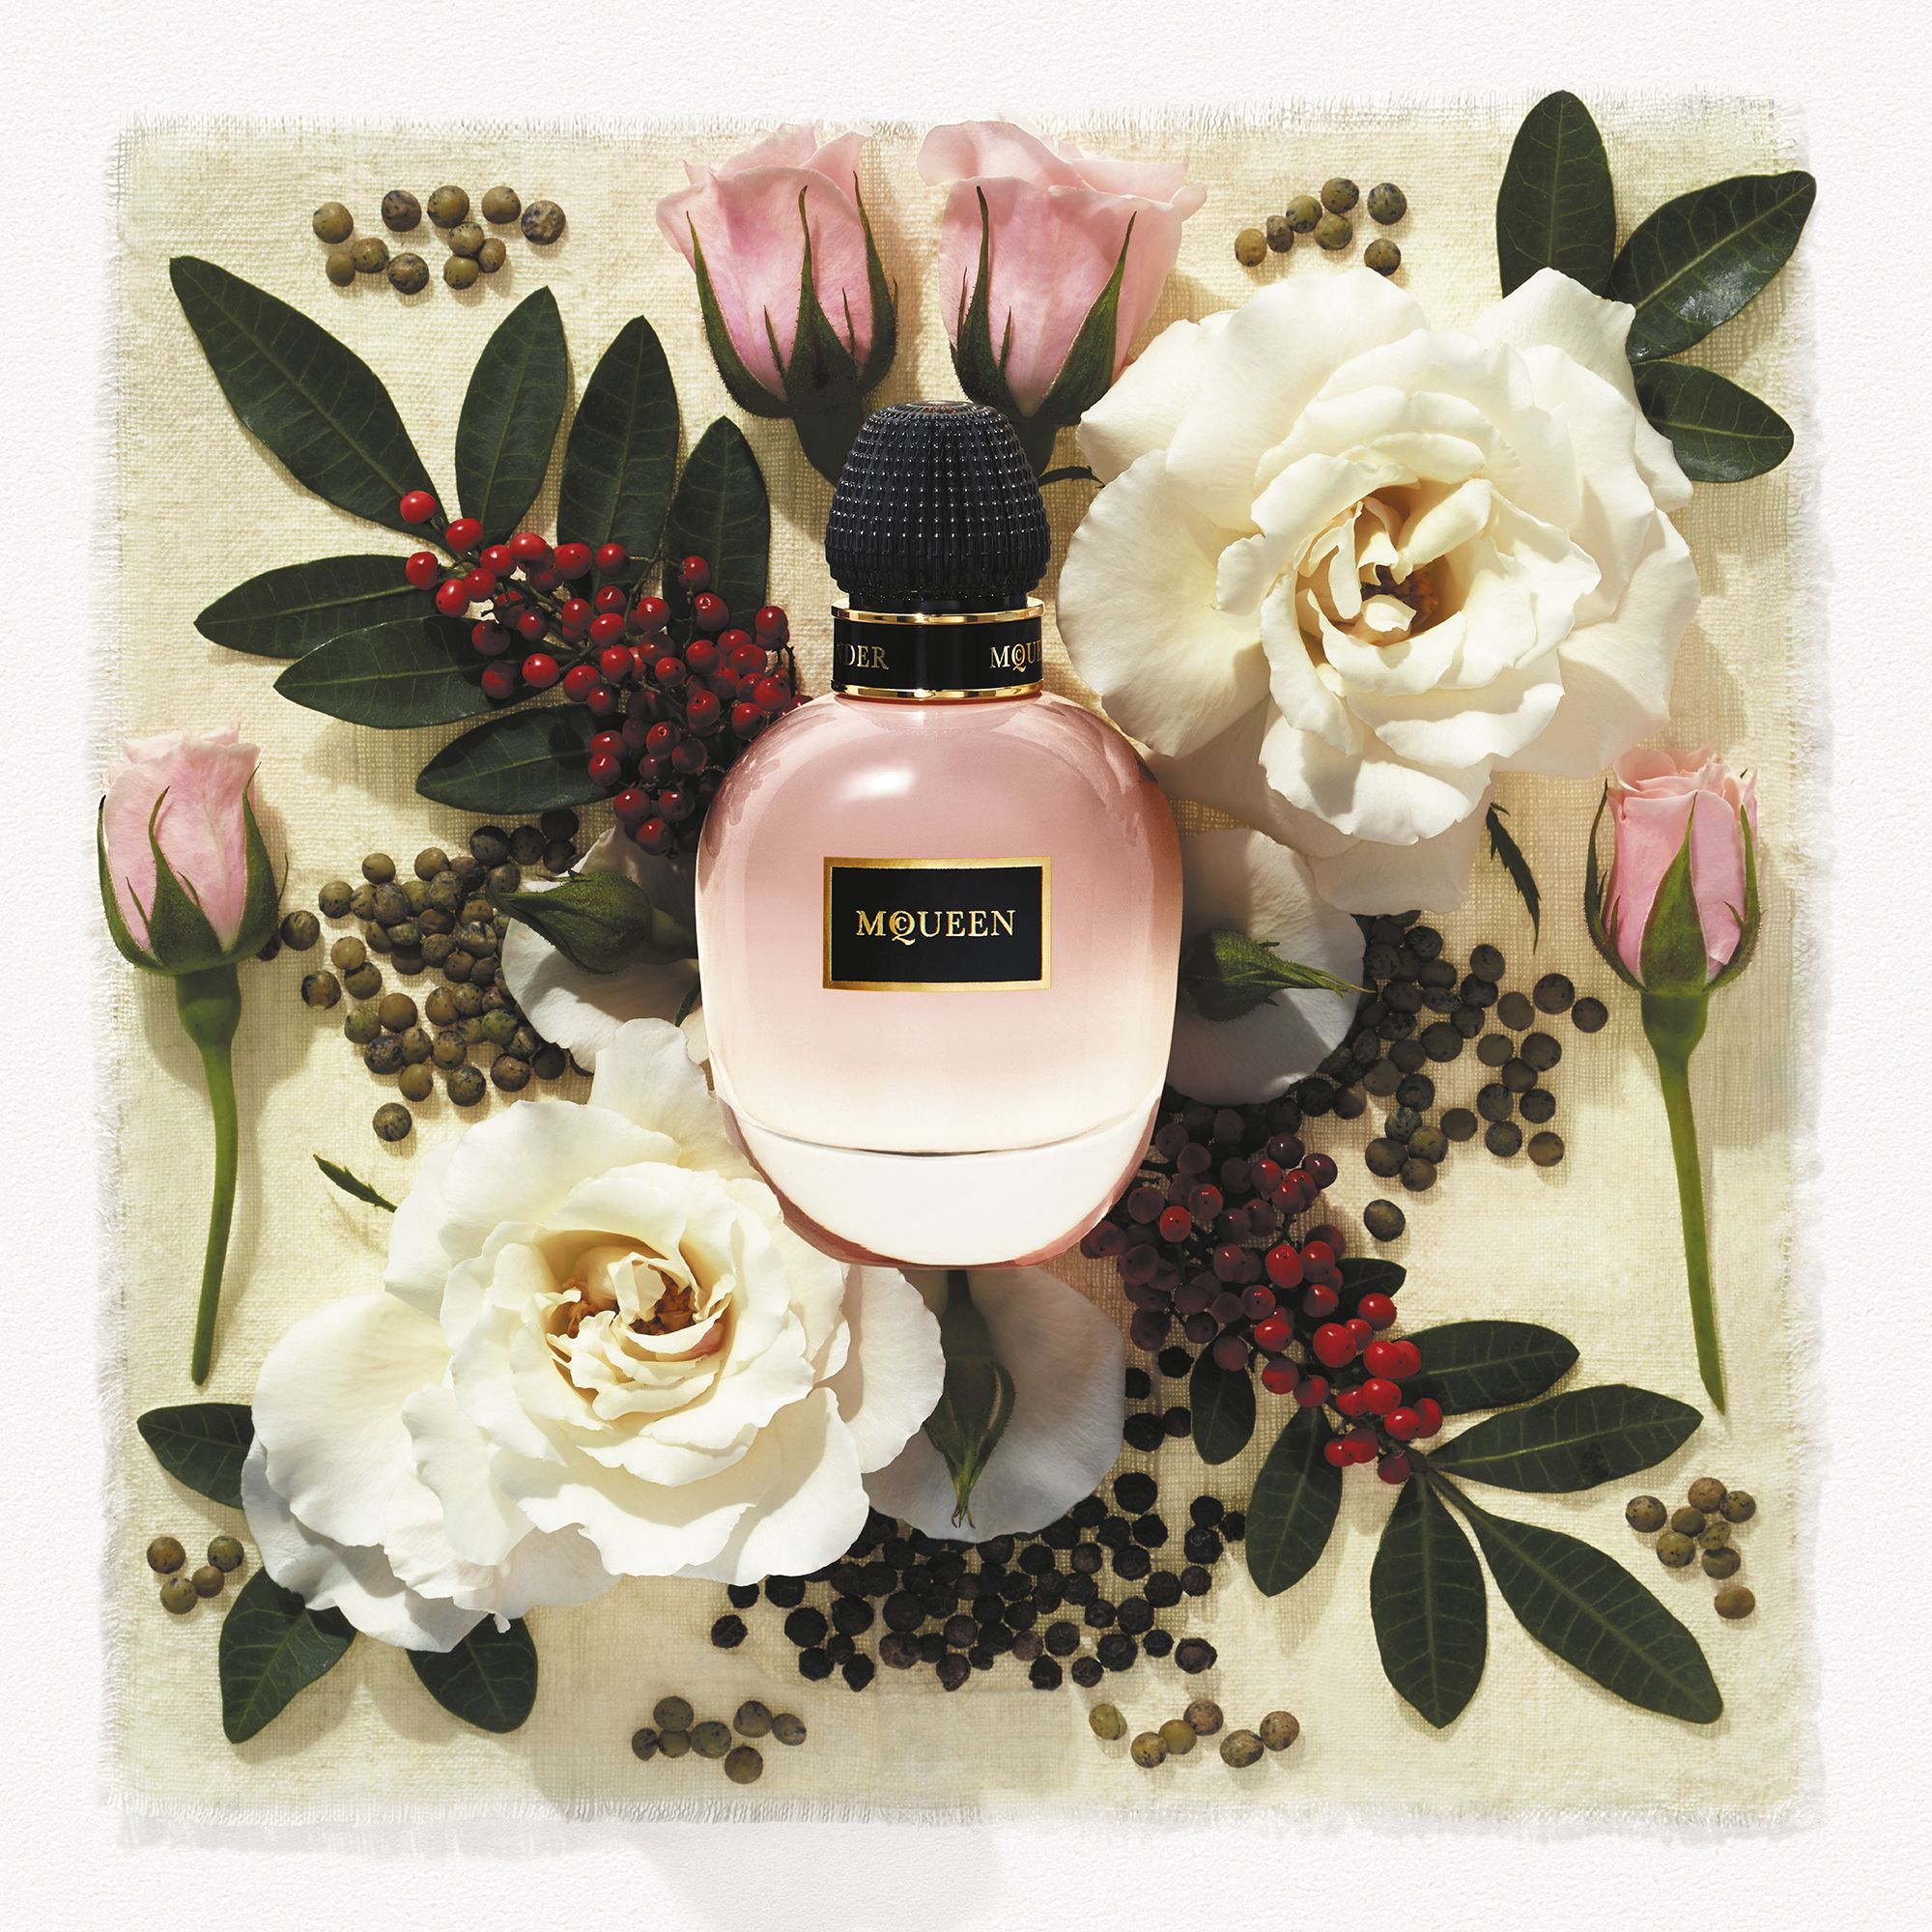 Celtic Rose Is A Delicate Aromatic Floral Fragrance The Gentle Scent Of Rain Drenched Rose Petals Is Restorative Taking Care Of The Heart While Spicy Pepper